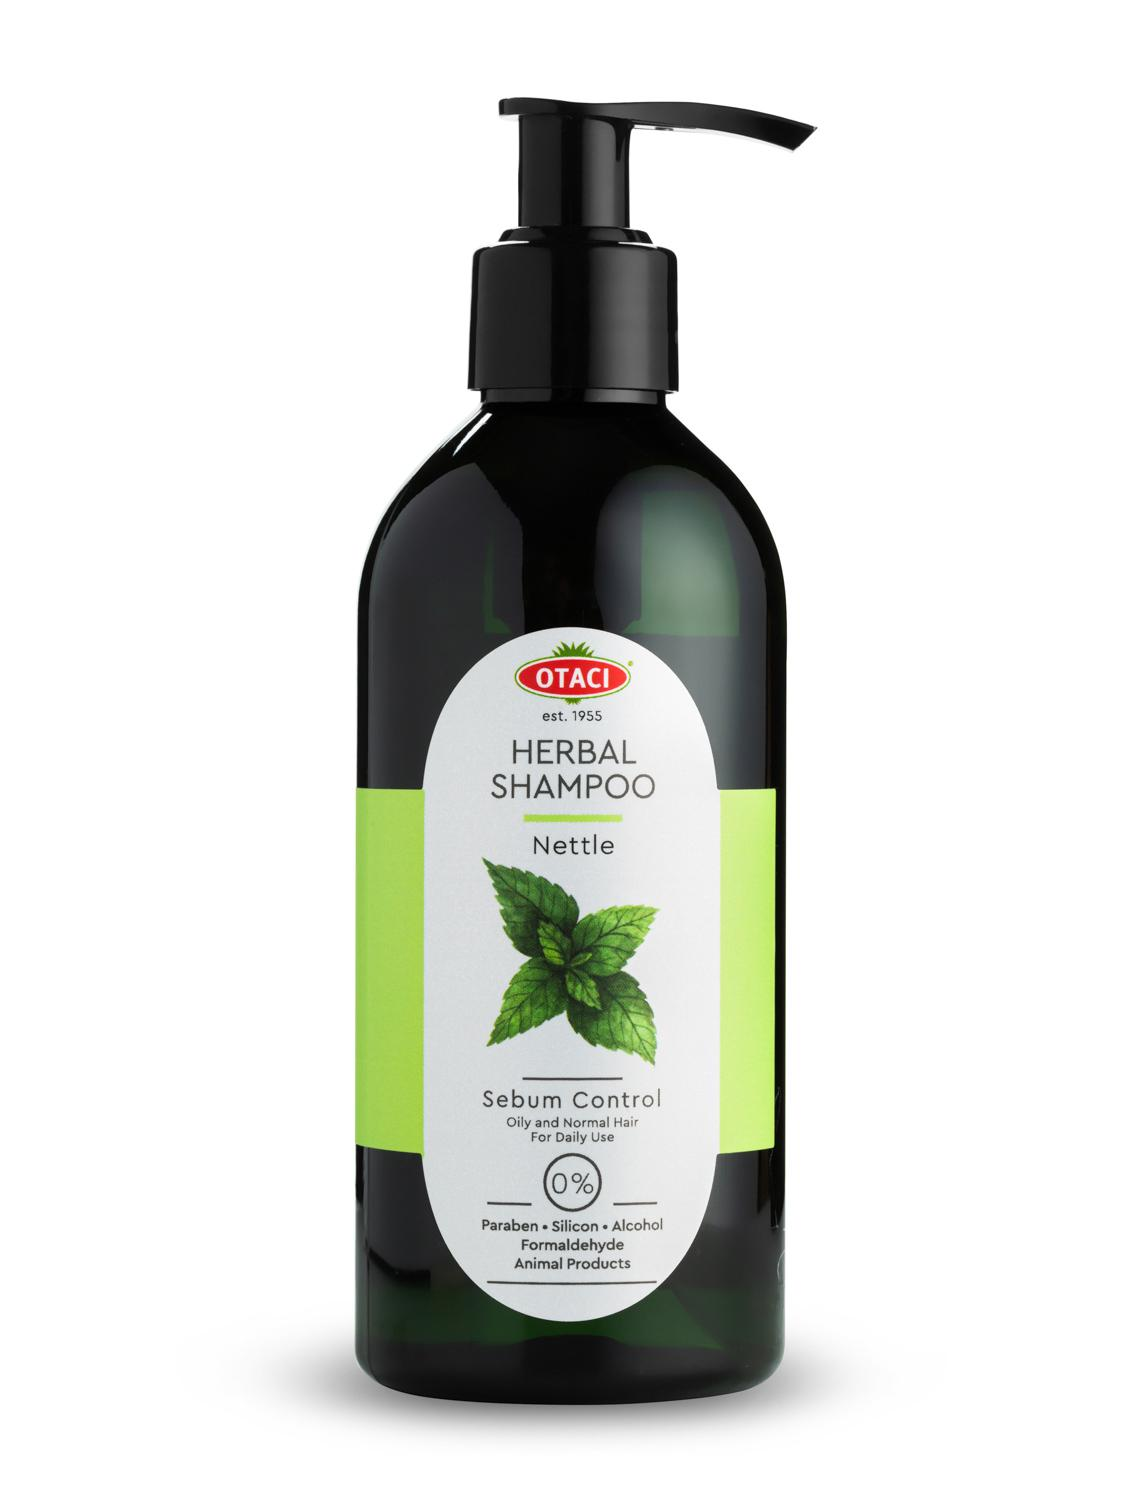 Otaci/ Balancing and Volumizing Herbal Shampoo with Nettle